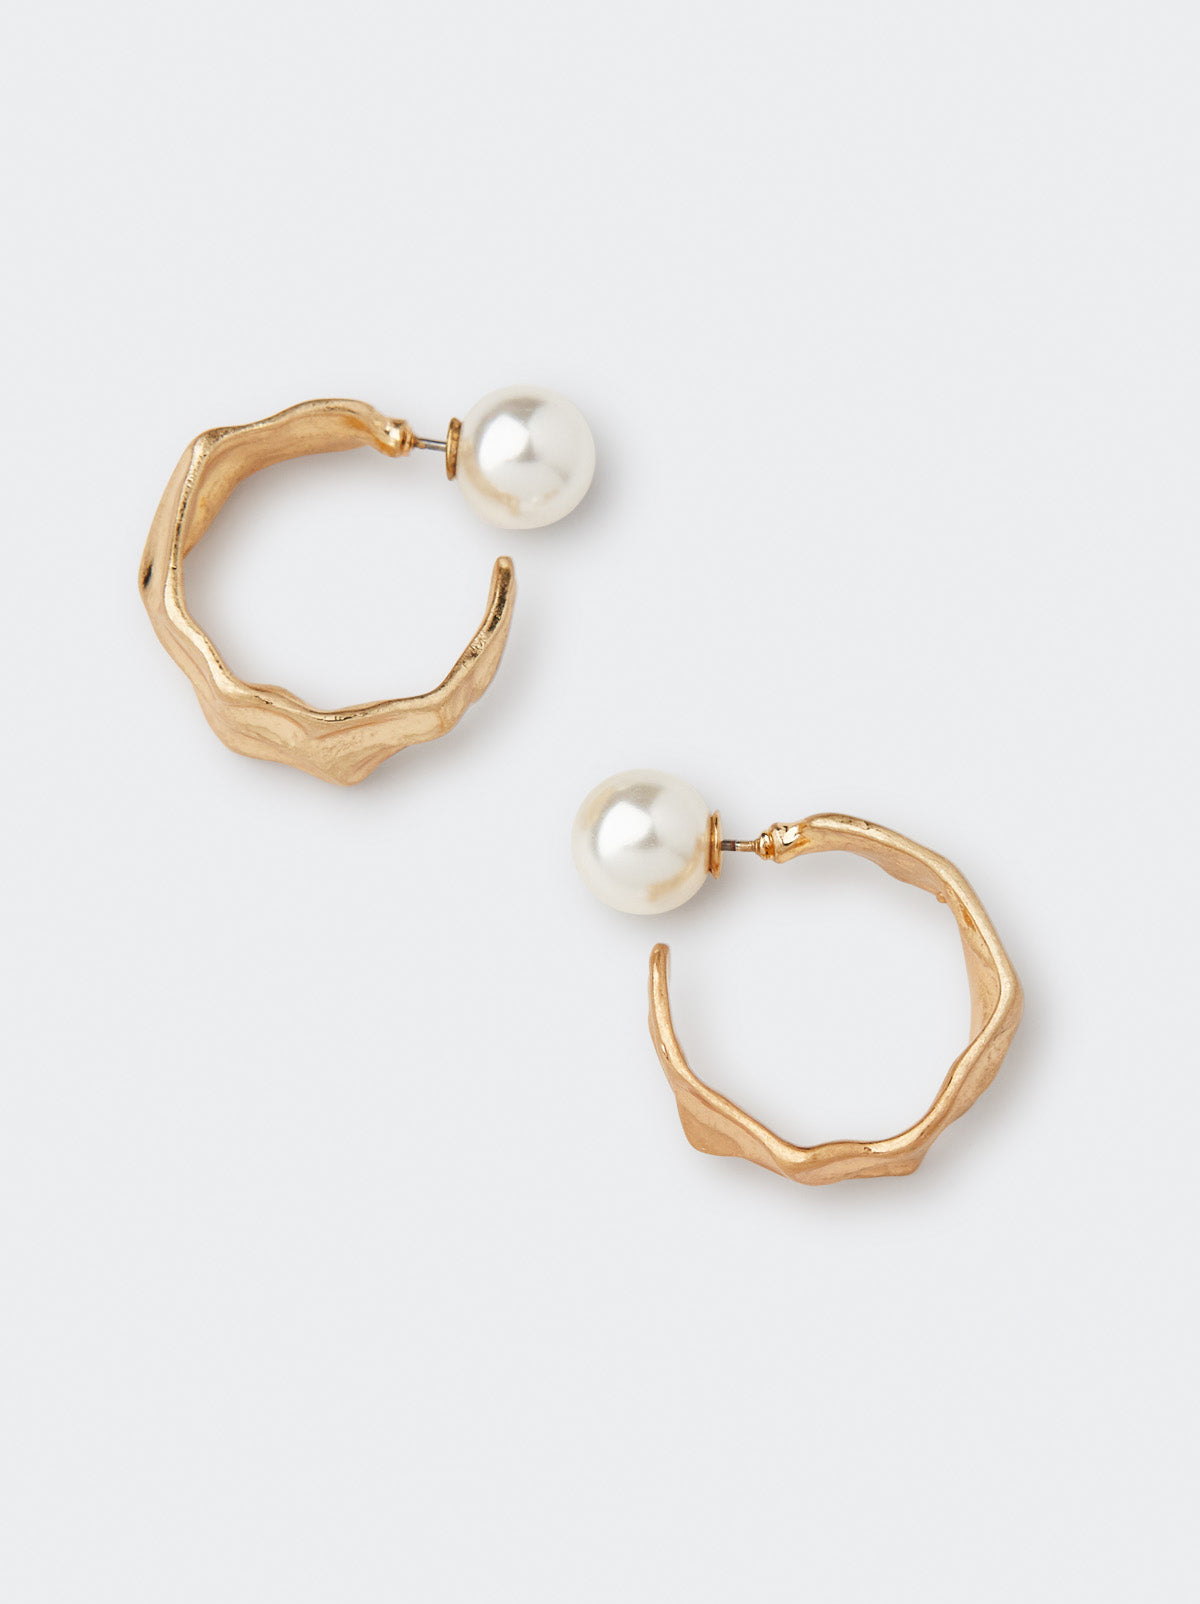 Pearl and Hammered Gold Drop Earrings by KITRI Studio